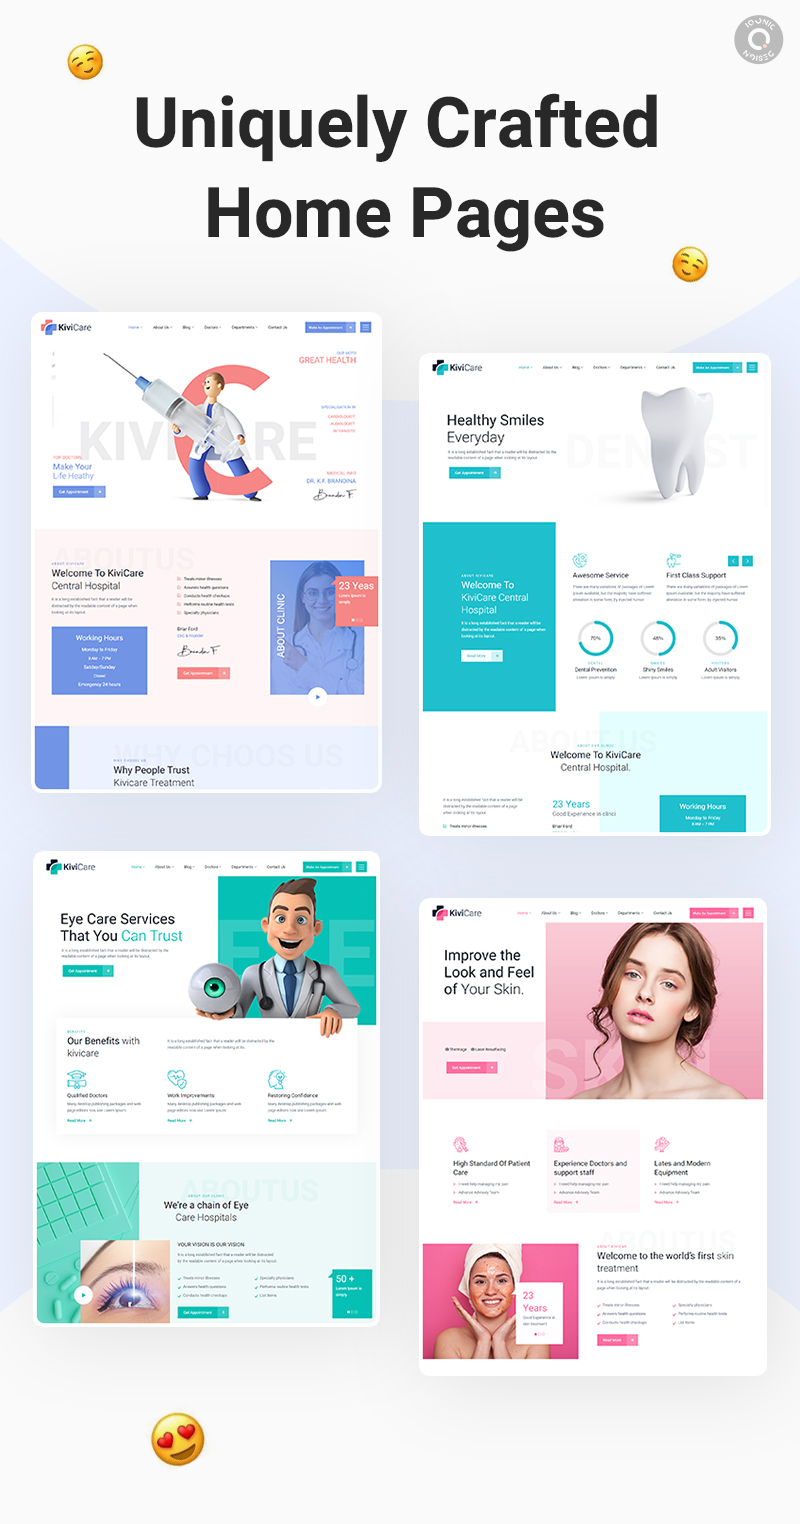 Medical Clinic WordPress Theme   KiviCare   Iqonic Design medical clinic and patient management wordpress theme KiviCare 6